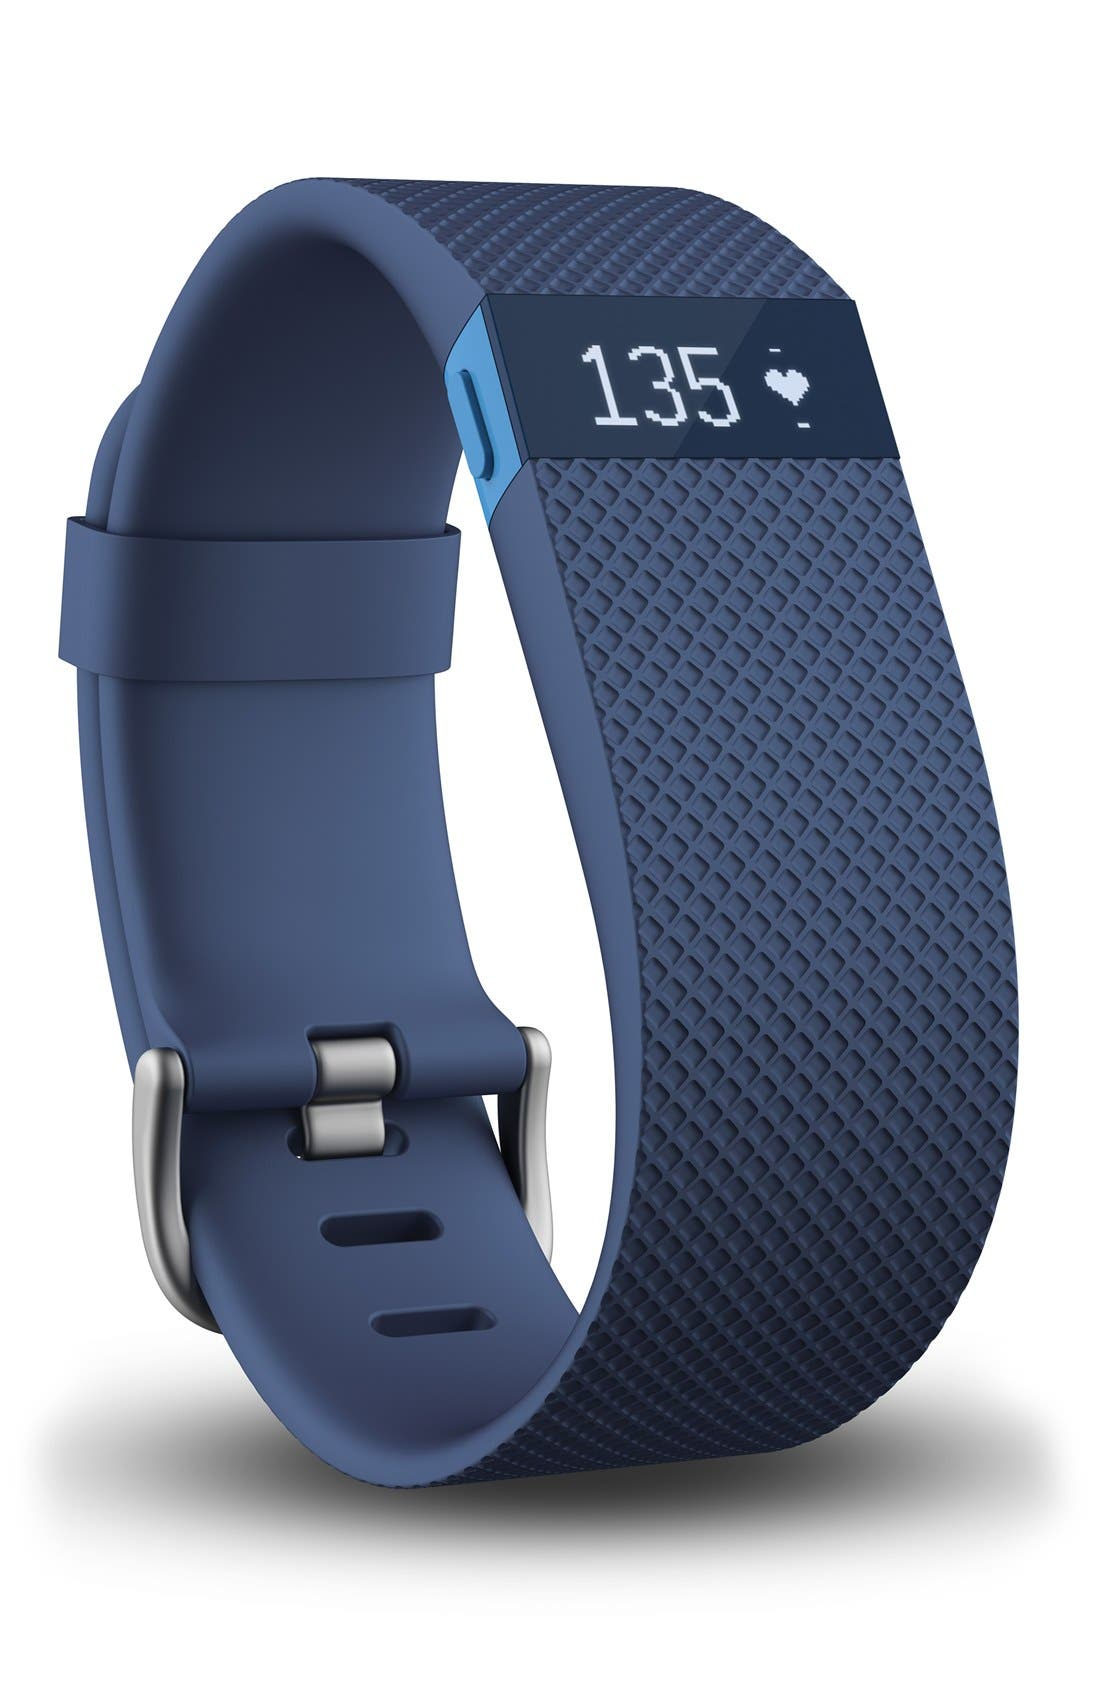 Main Image - Fitbit Charge HR Wireless Activity & Heart Rate Tracker